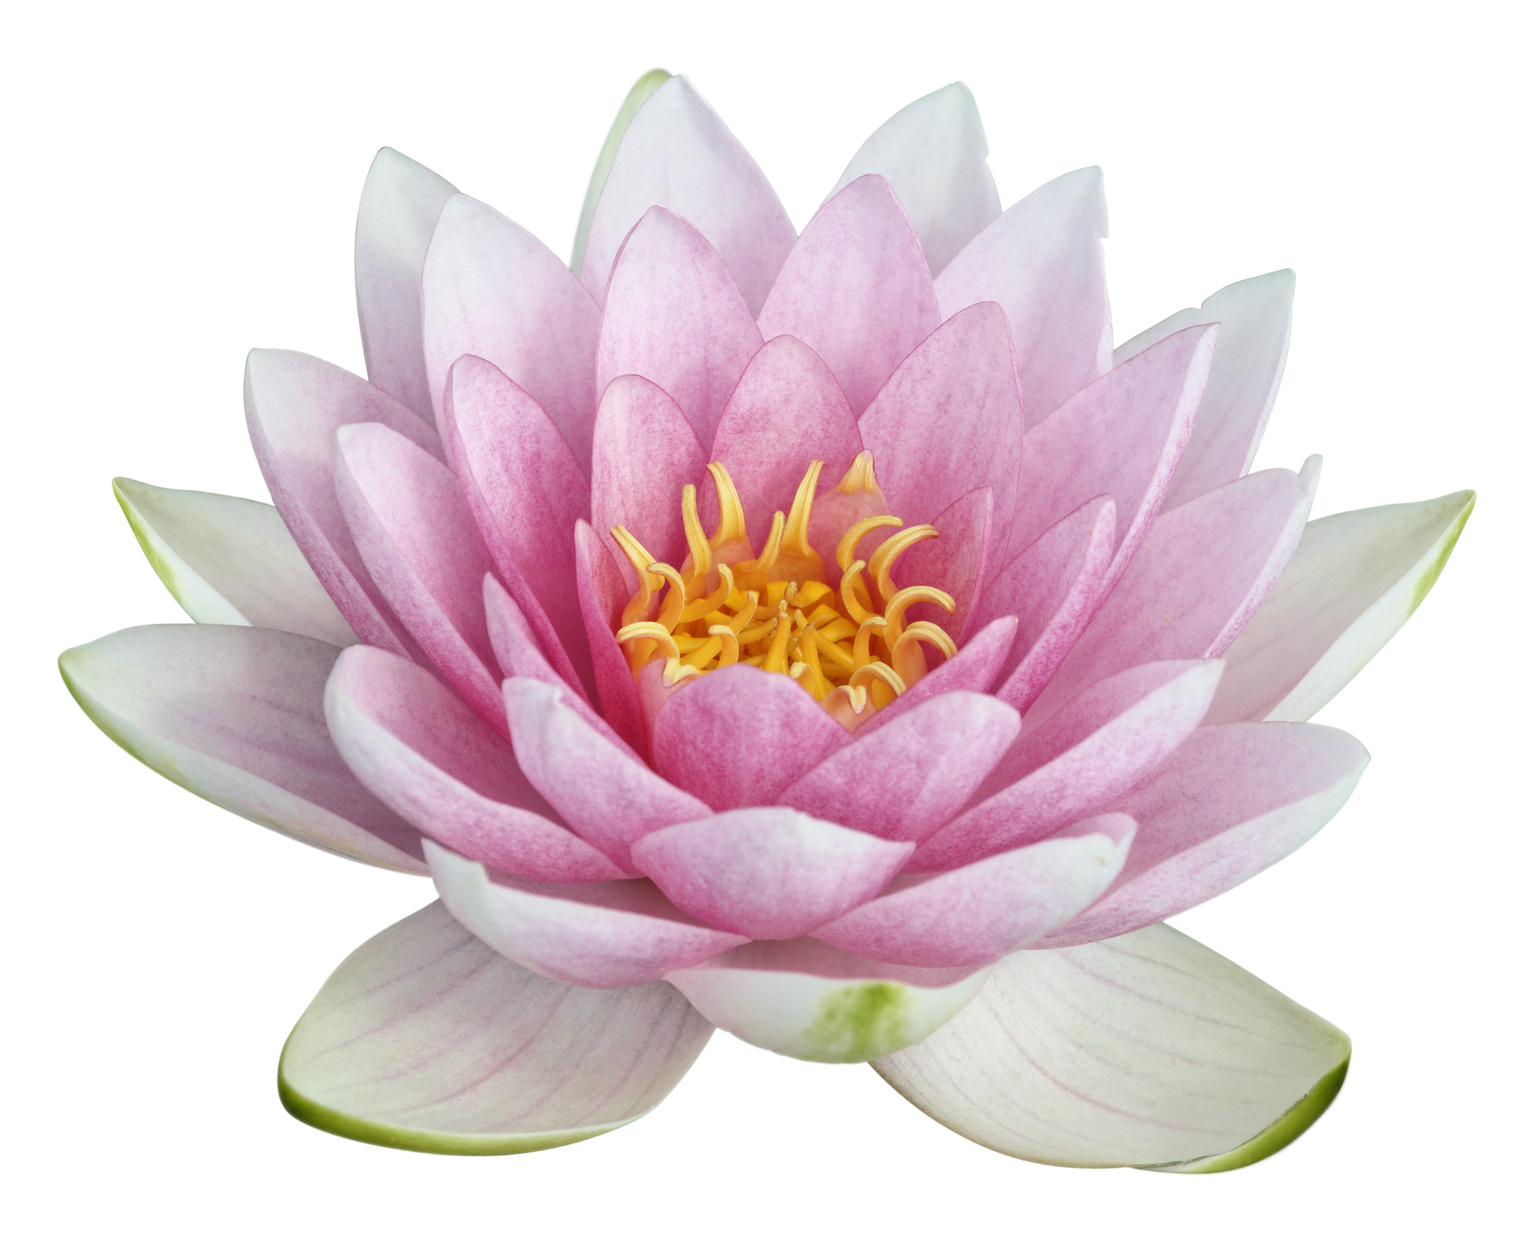 Lotus flower png hd transparent lotus flower hdg images pluspng for pluspng lotus flower png hd mightylinksfo